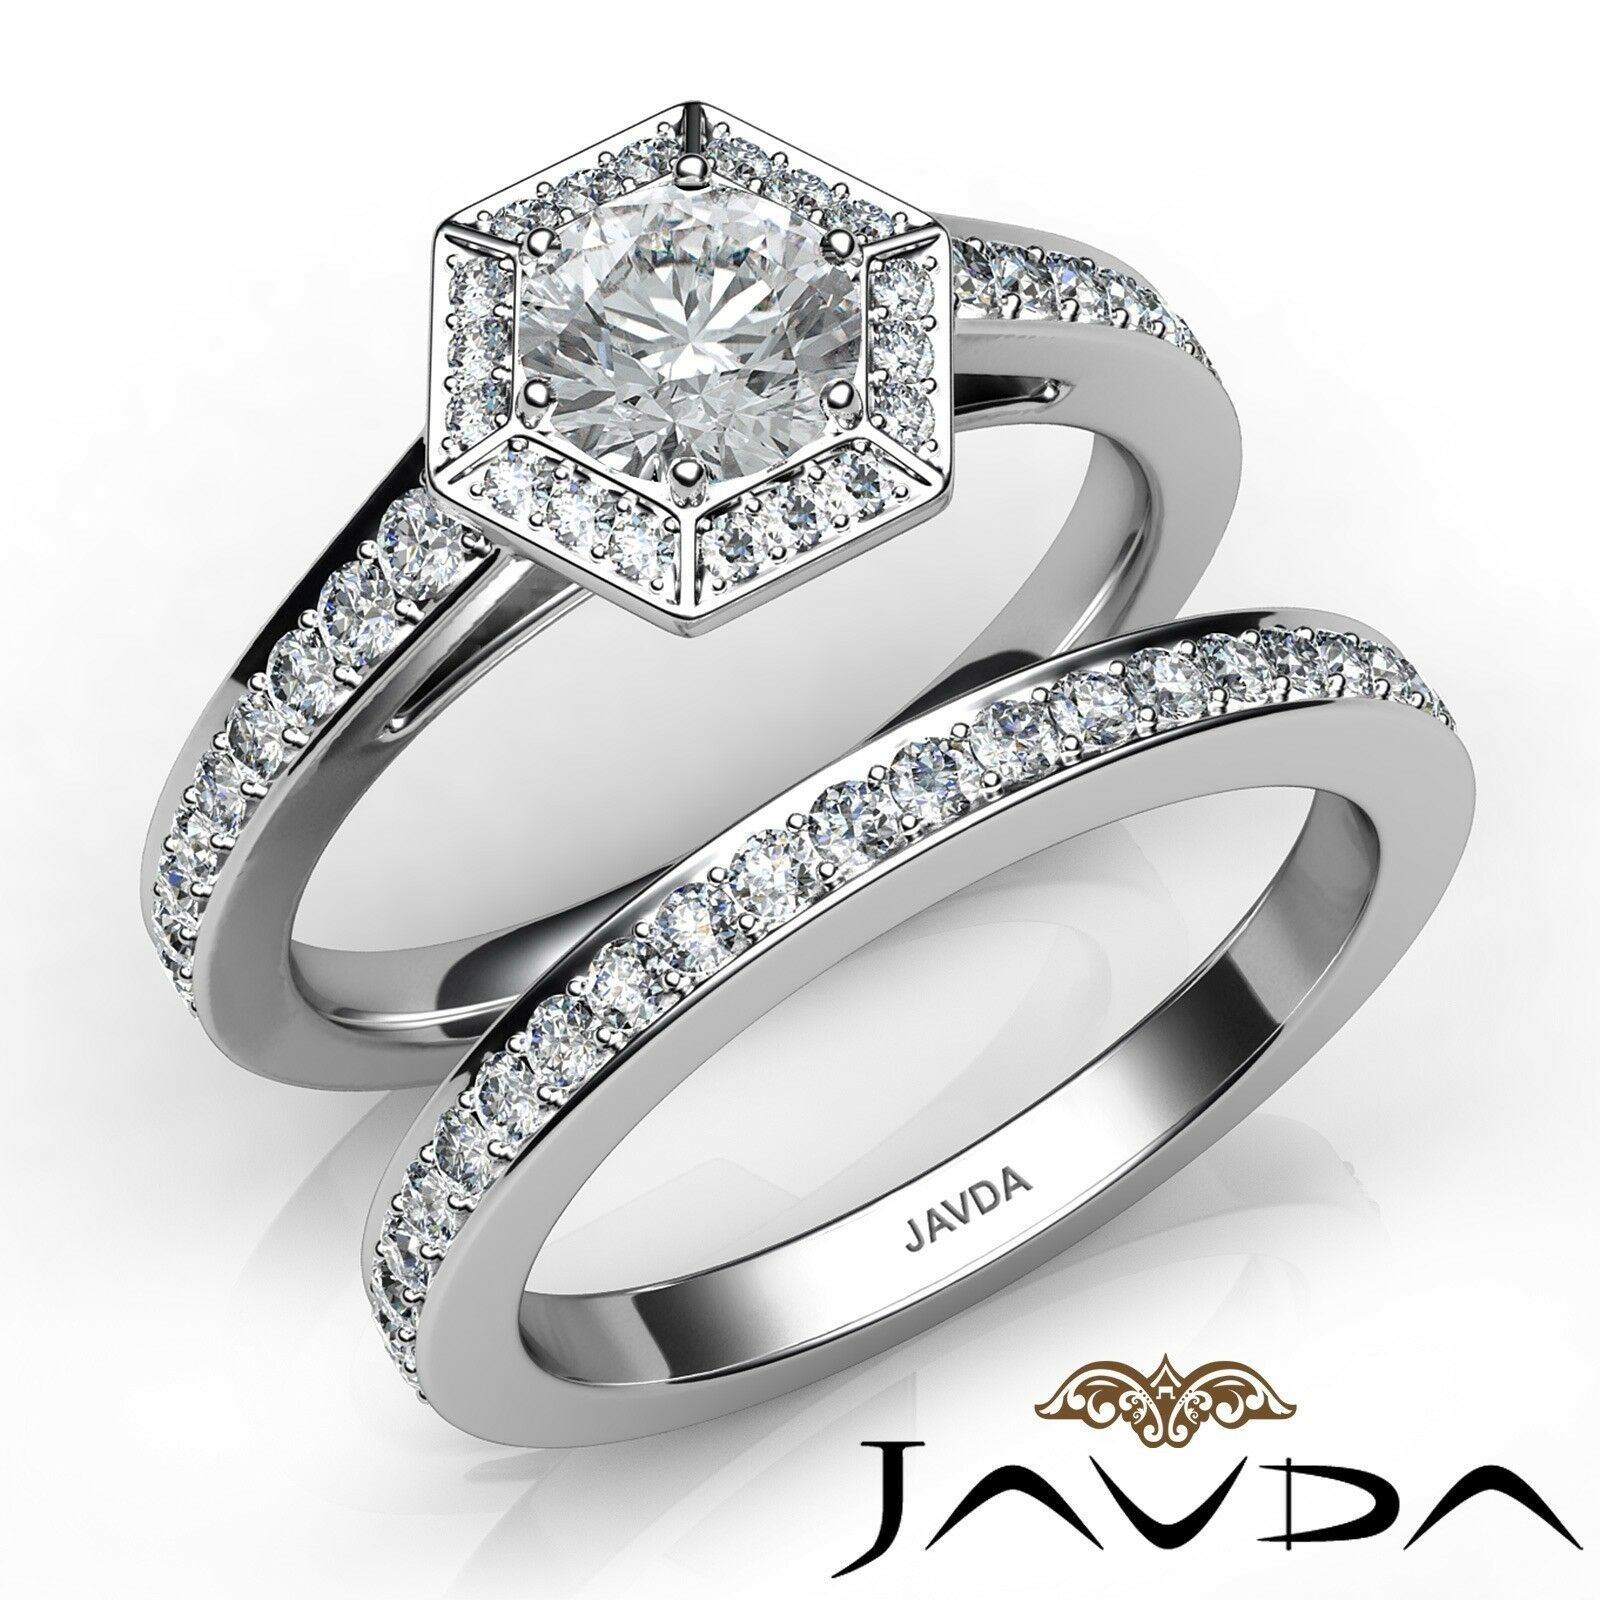 1.6ctw Hexagon Halo Bridal Set Round Diamond Engagement Ring GIA F-VVS2 W Gold